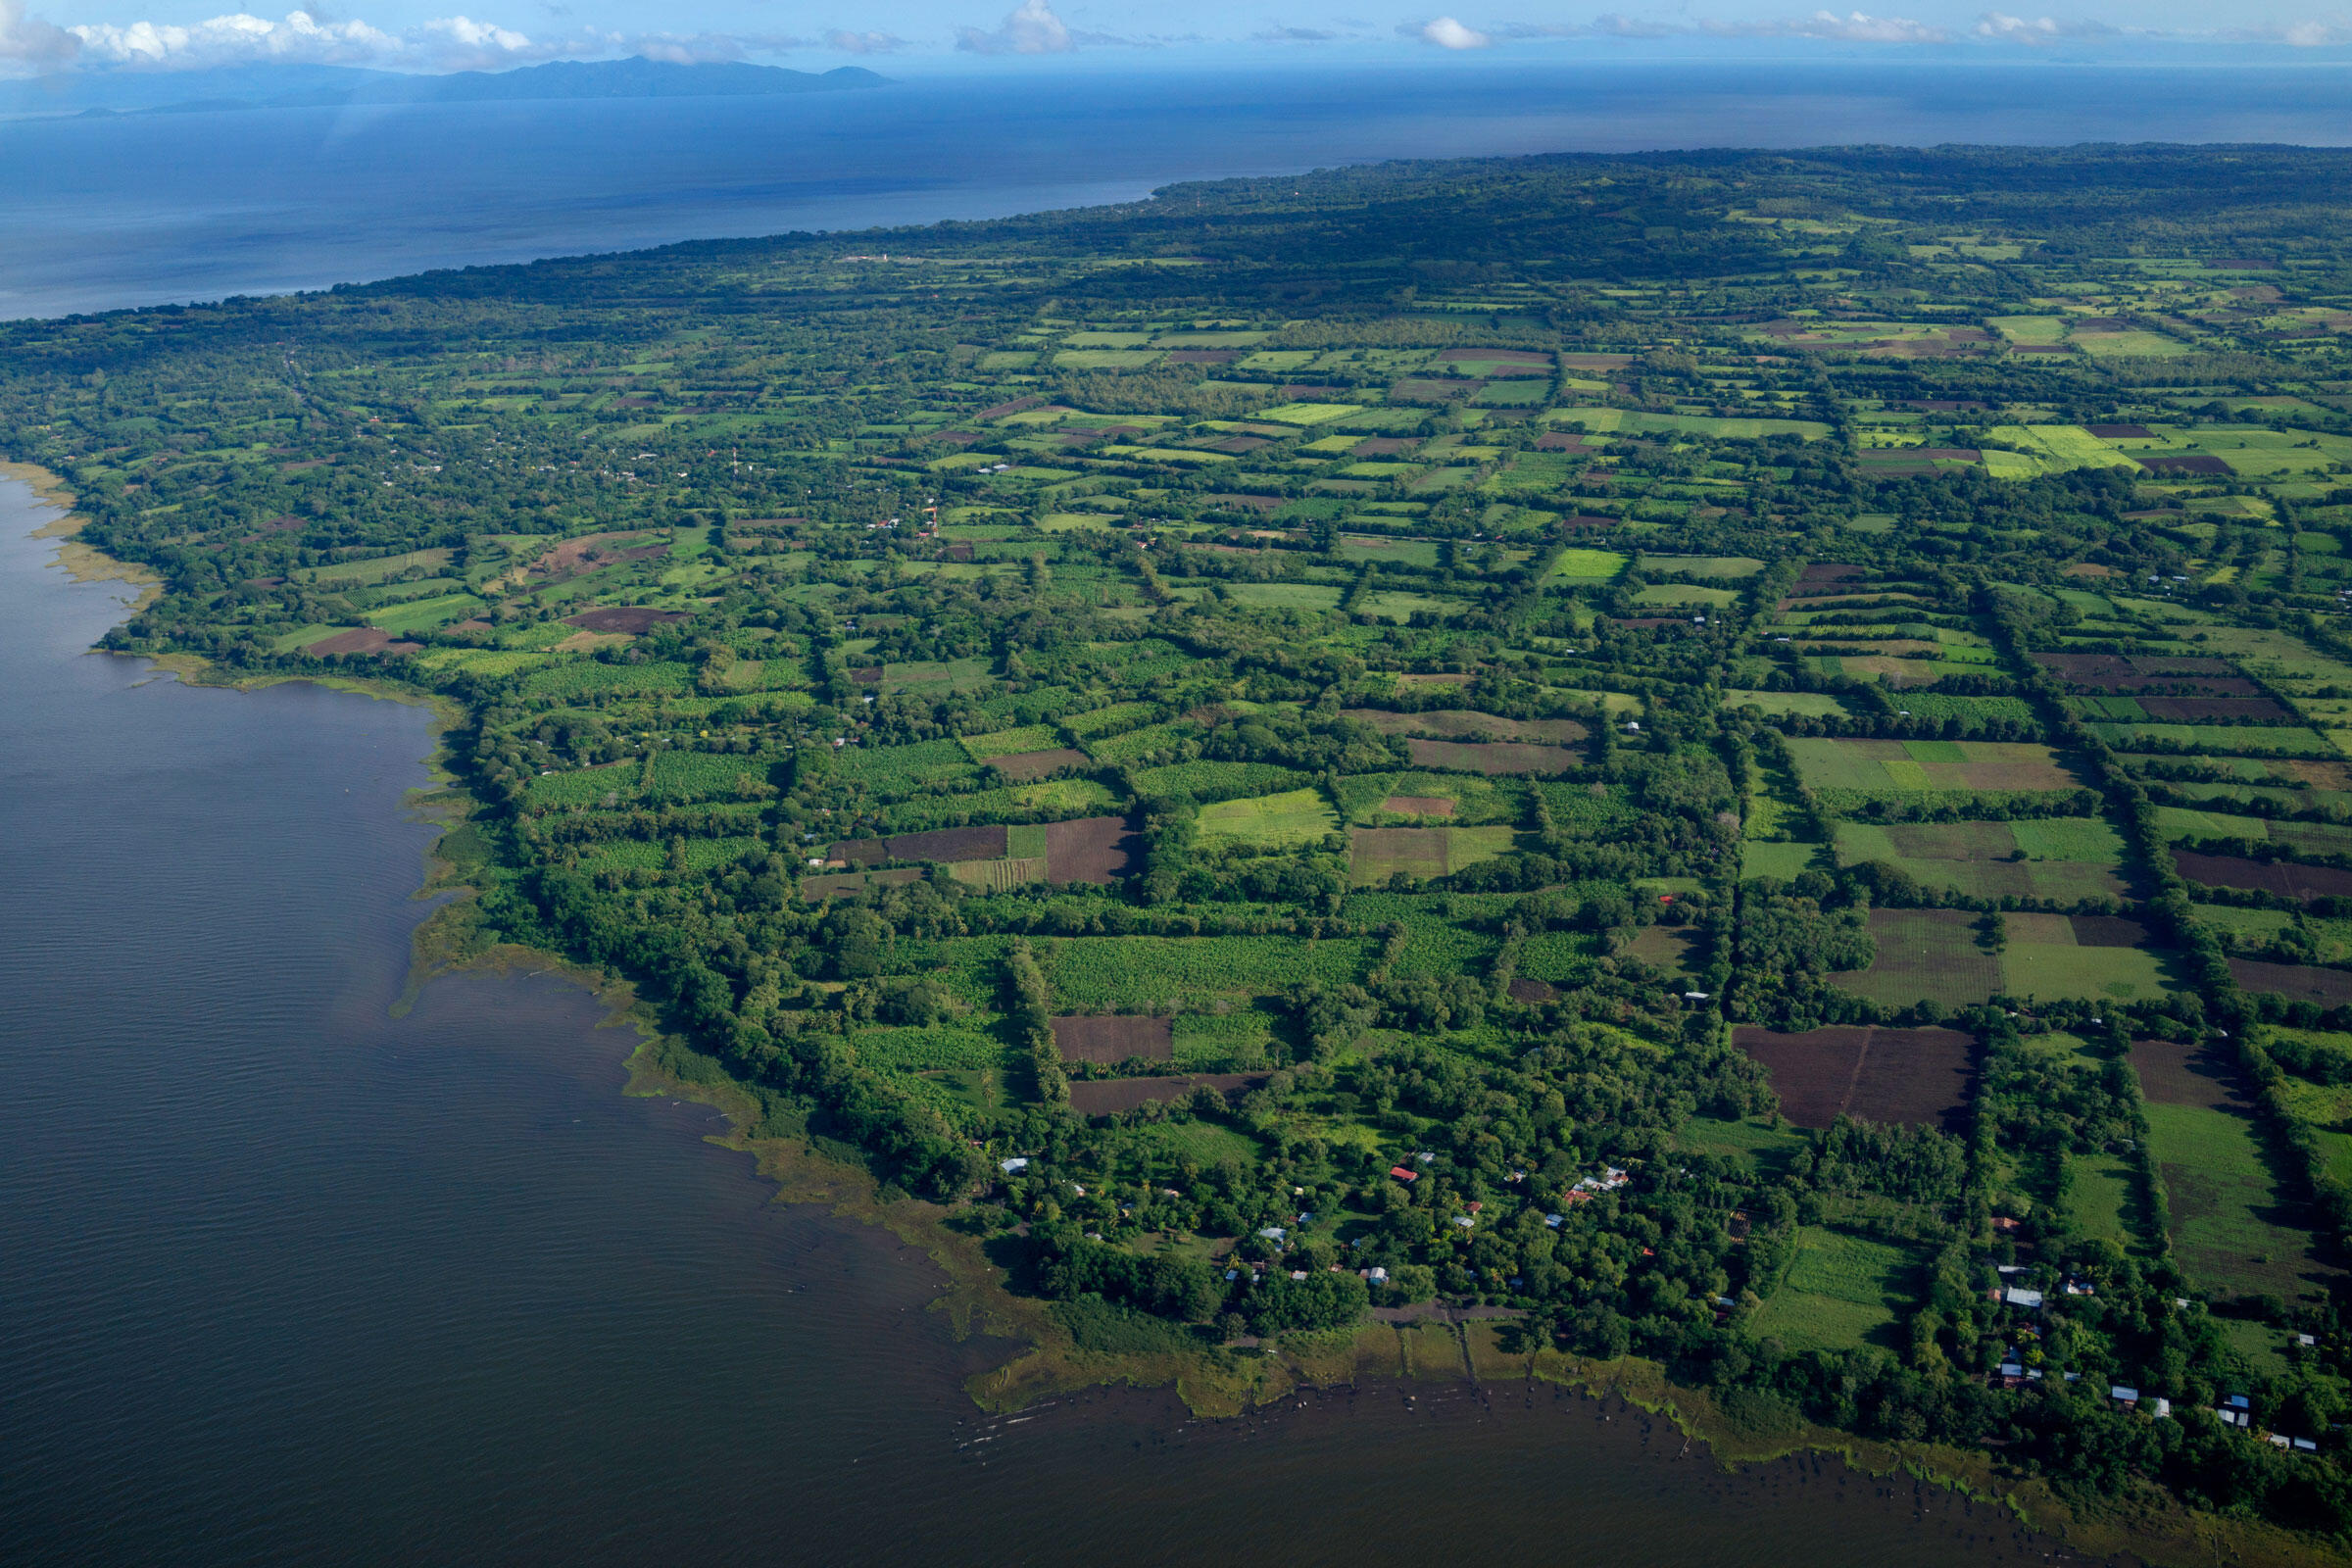 Lake Nicaragua's Ometepe Island, which was declared a Biosphere Reserve in 2010, boasts a variety of crops, including plantains and rice, as well as birds like the Three-wattled Bellbird and Yellow-naped Parrot. Ivan Kashinsky